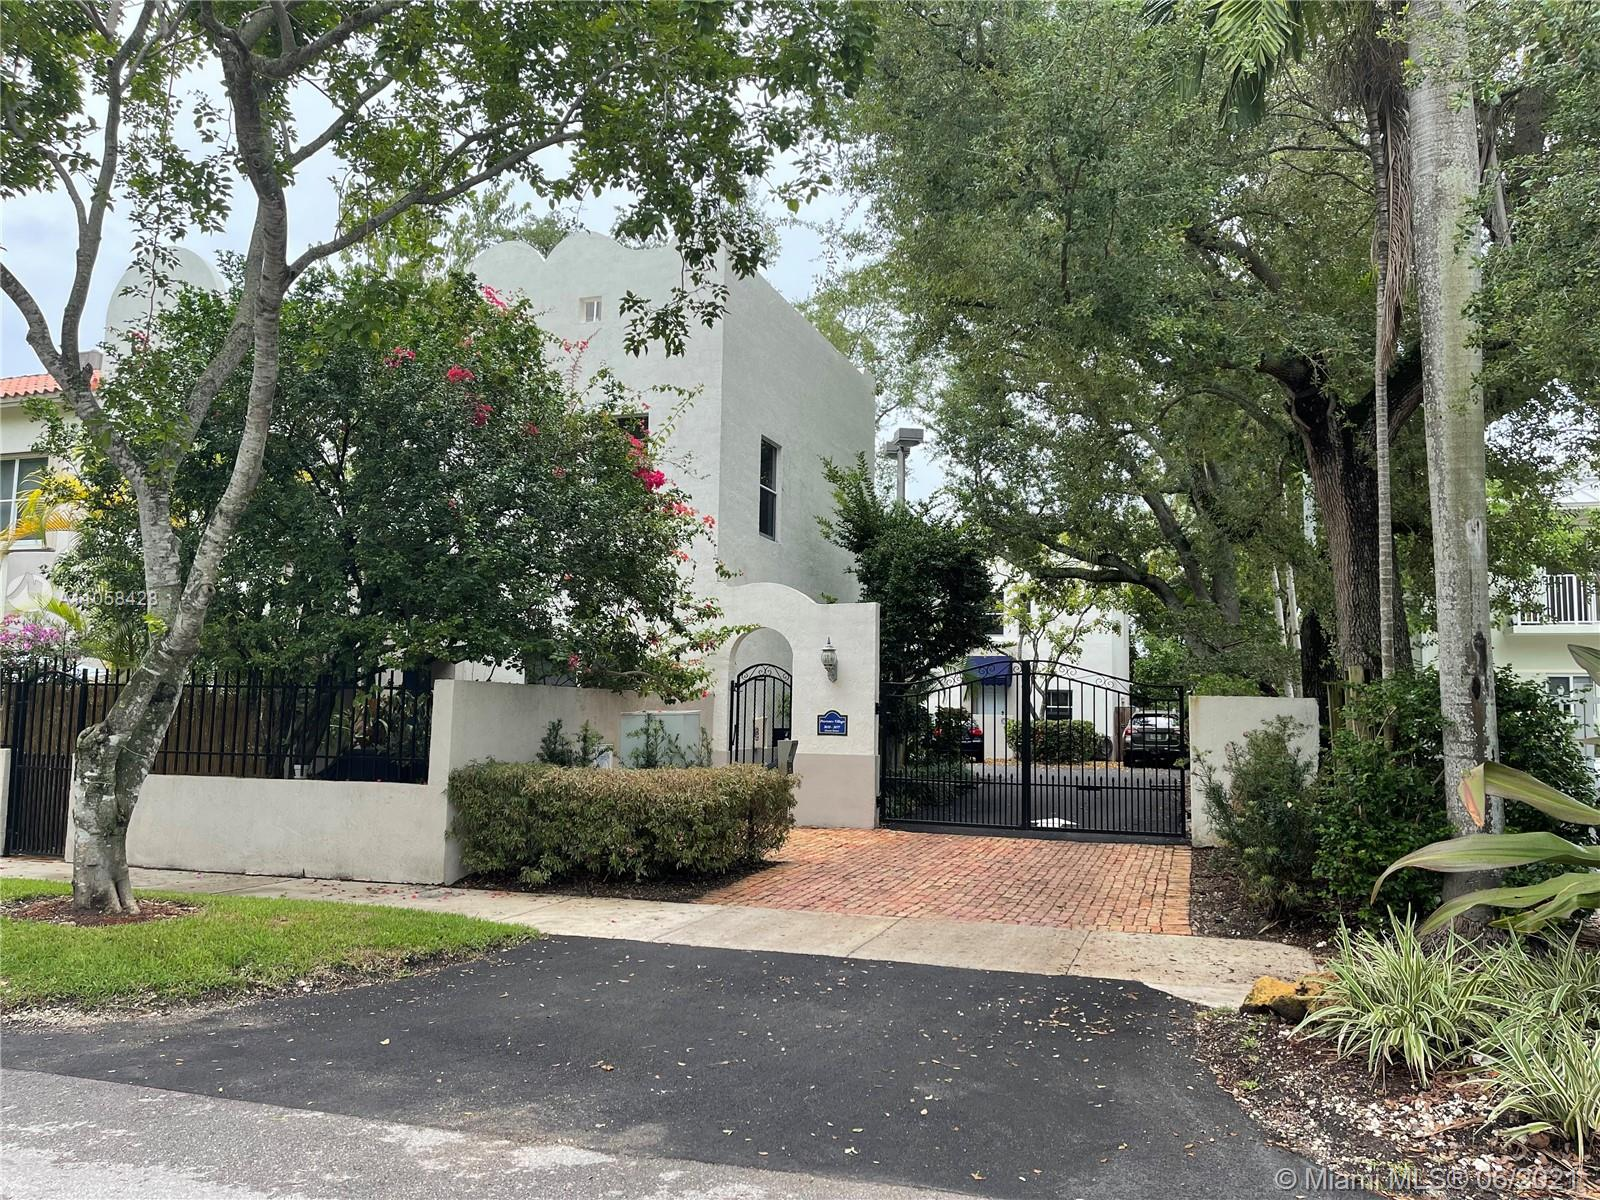 Fantastic location in the heart of sought after Coconut Grove. Perfect starter home in a quiet and gated community. Great 2/1.5 townhouse with private patio ideal for outdoor living, washer/dryer in unit,  tiled and wood floors throughout, accordion shutters, and 1 assigned parking in front of unit. Don't lose this opportunity, unit won't last! Easy to show.